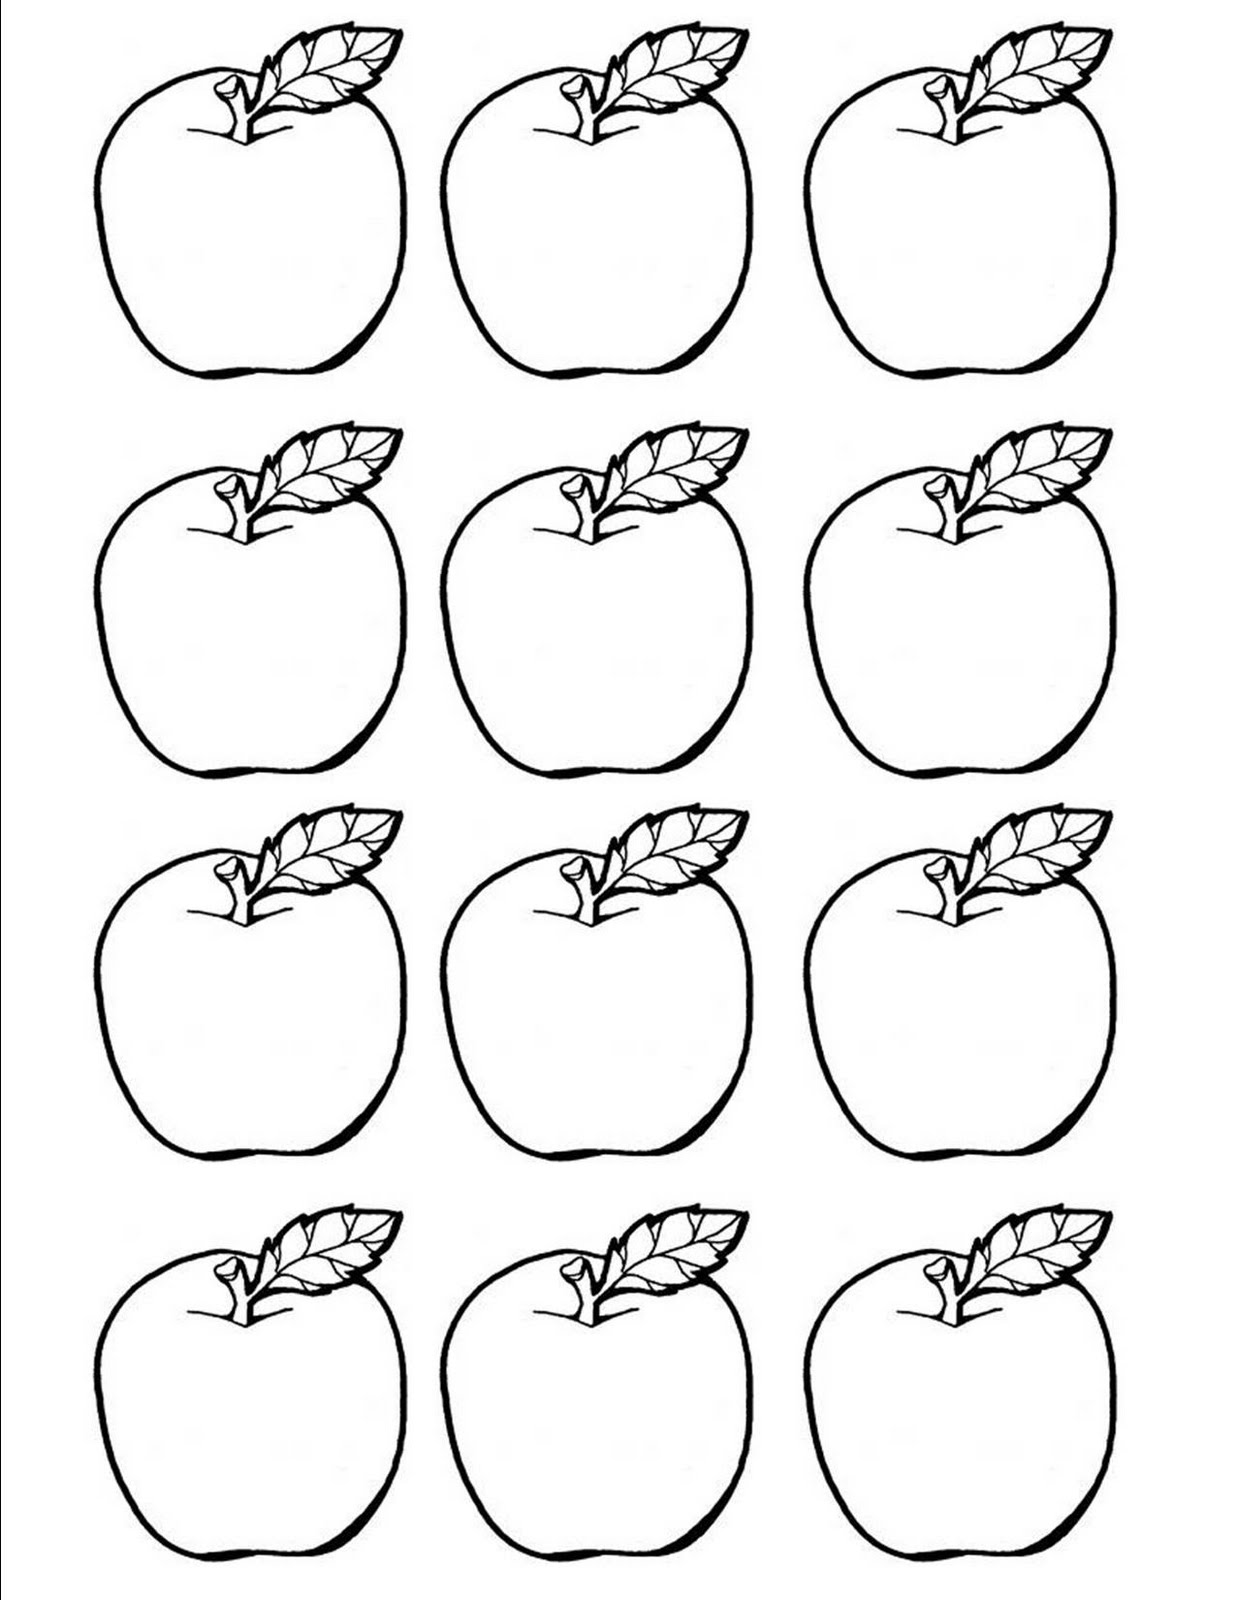 Apples Drawing At Getdrawings